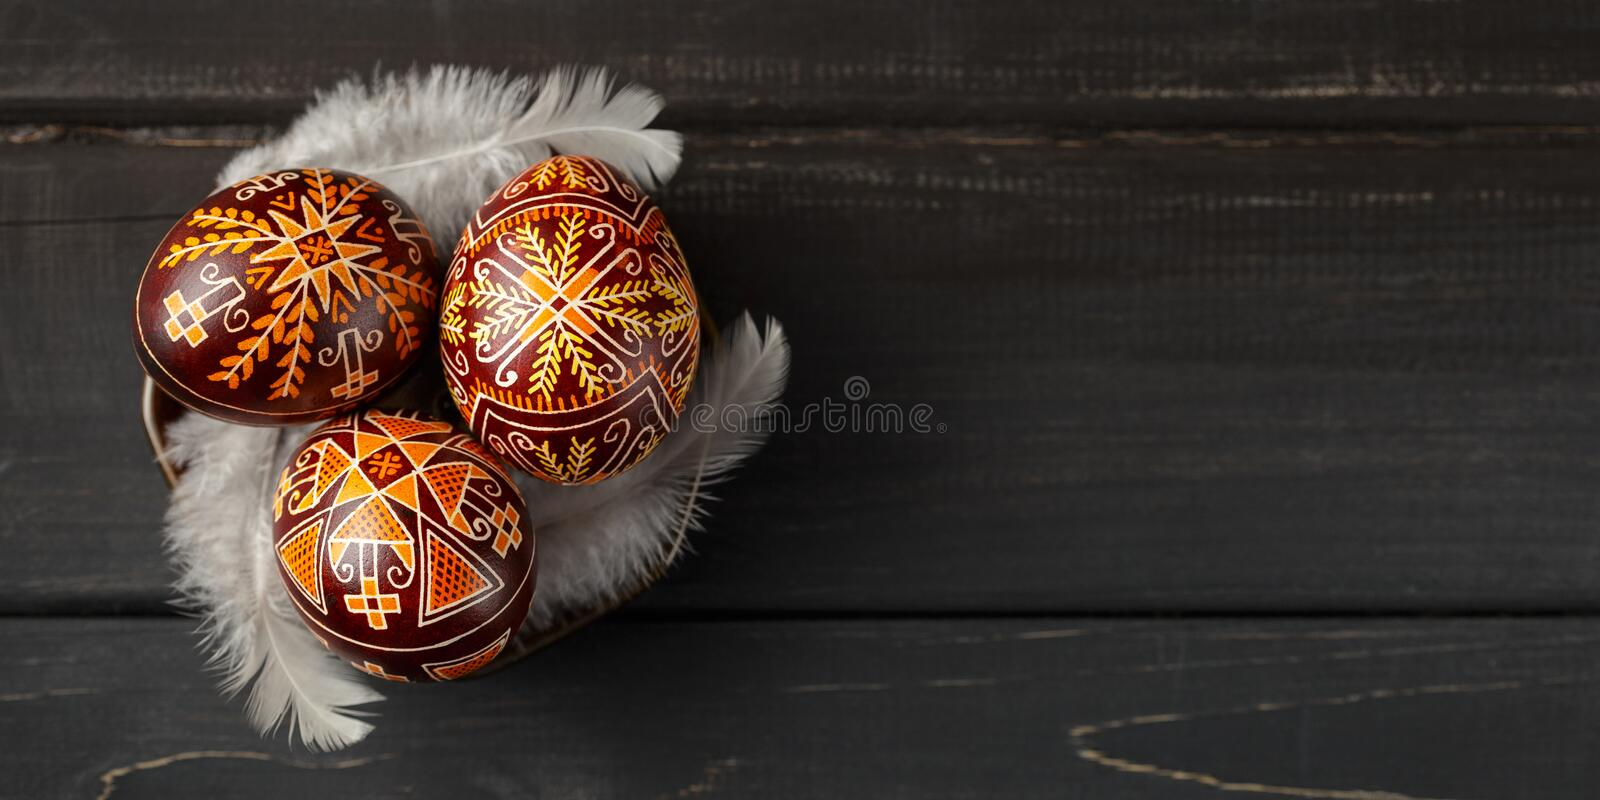 Easter eggs decorated with wax resist technique. Pysanky on a small plate, Ukrainian Easter eggs decorated with wax-resist dyeing technique, white feathers stock photography